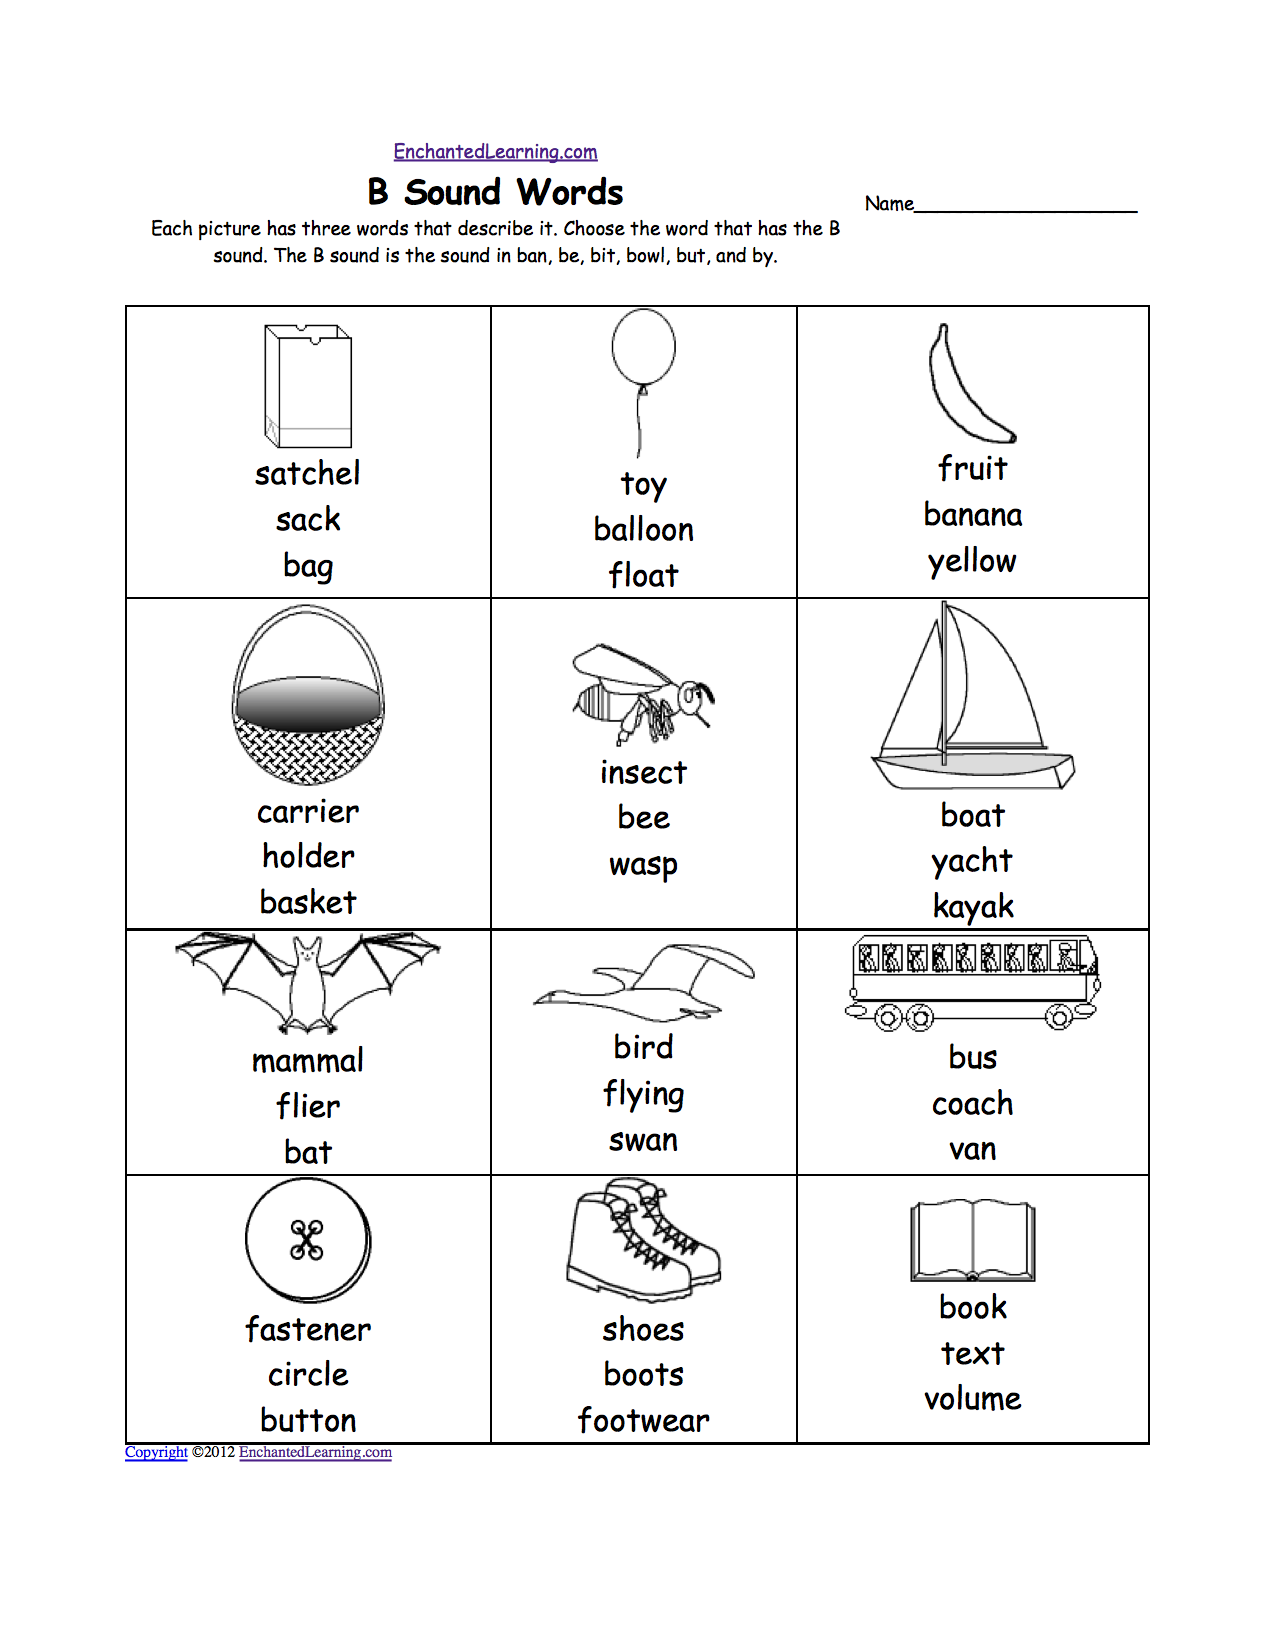 Aldiablosus  Outstanding Phonics Worksheets Multiple Choice Worksheets To Print  With Remarkable Quotbquot Sound Phonics Worksheet Multiple Choice Each Picture Has Three Words That Describe It Choose The Word That Has A Quotbquot Sound The Quotbquot Sound Is The Sound  With Amazing Create Free Math Worksheets Also Free Subtraction Worksheets For Second Grade In Addition Healthy Eating Worksheets For Kids And Math Venn Diagram Worksheets As Well As Graph Transformation Worksheet Additionally Mulan Worksheets From Enchantedlearningcom With Aldiablosus  Remarkable Phonics Worksheets Multiple Choice Worksheets To Print  With Amazing Quotbquot Sound Phonics Worksheet Multiple Choice Each Picture Has Three Words That Describe It Choose The Word That Has A Quotbquot Sound The Quotbquot Sound Is The Sound  And Outstanding Create Free Math Worksheets Also Free Subtraction Worksheets For Second Grade In Addition Healthy Eating Worksheets For Kids From Enchantedlearningcom